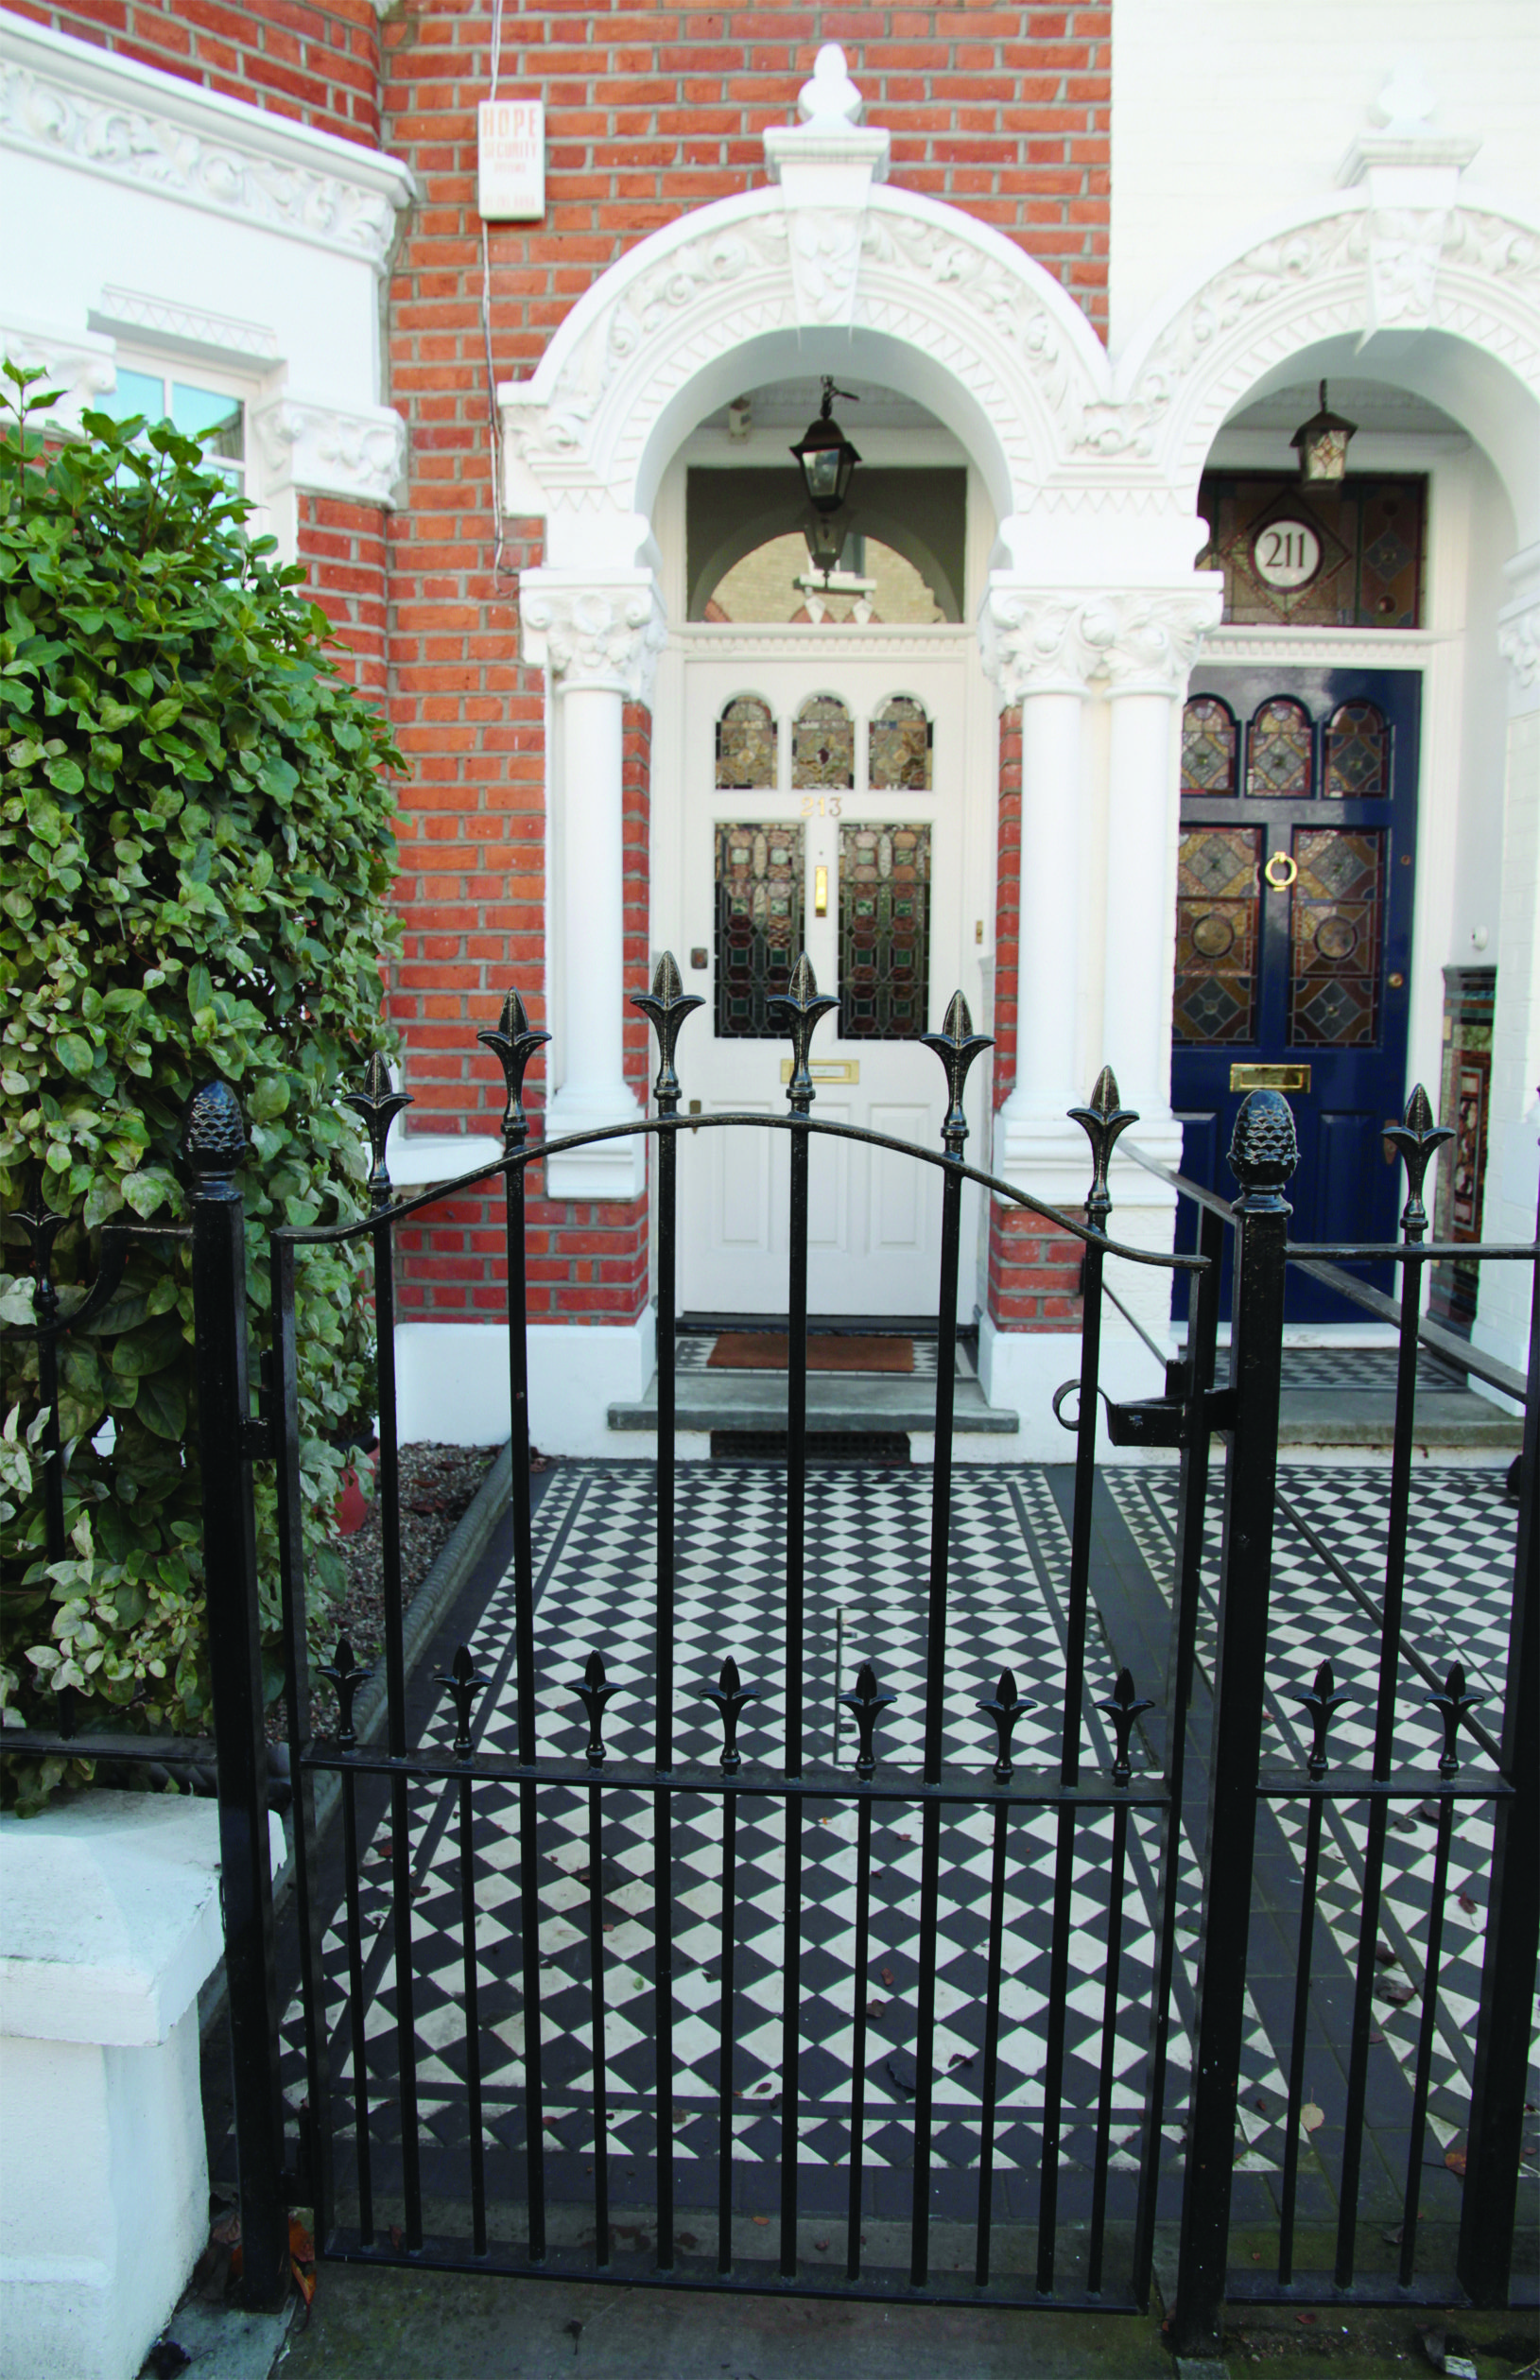 Stylish black cast iron gate outside victorian style home in London ...